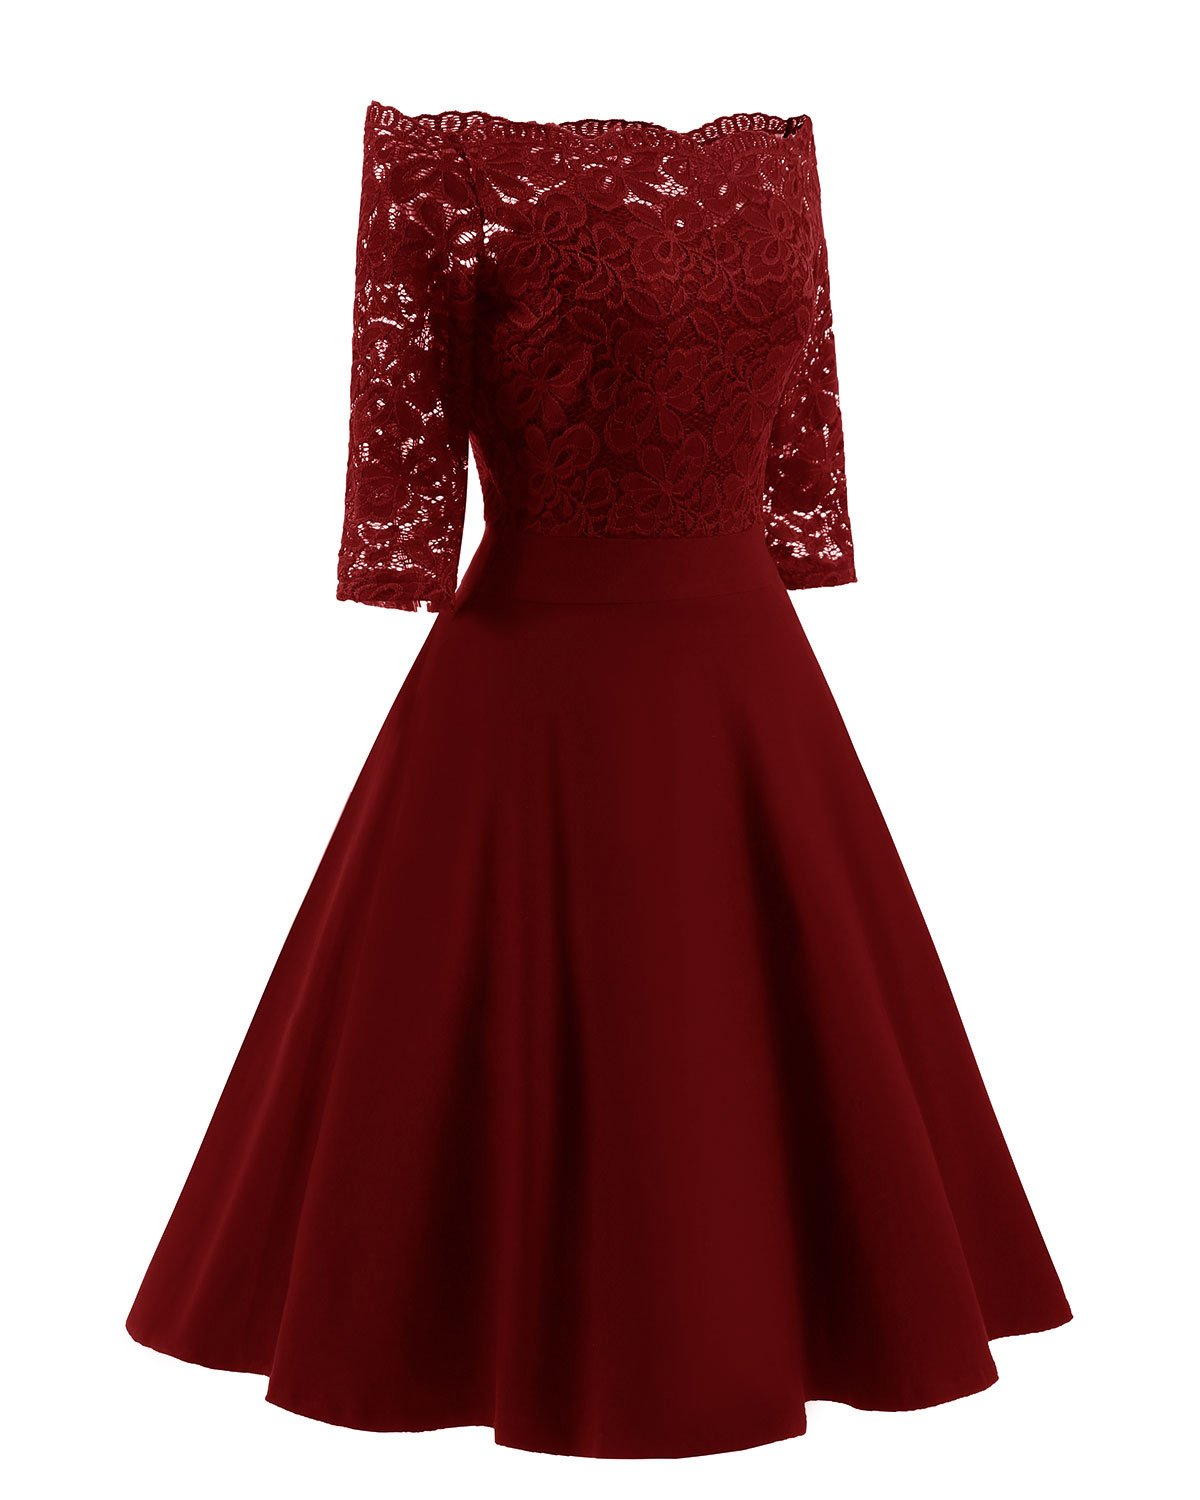 Women's Vintage Dresses Lace Floral Boat Neck 3/4 Long Sleeve Swing Dress A-Line Cocktail Party Prom (XL, Red)